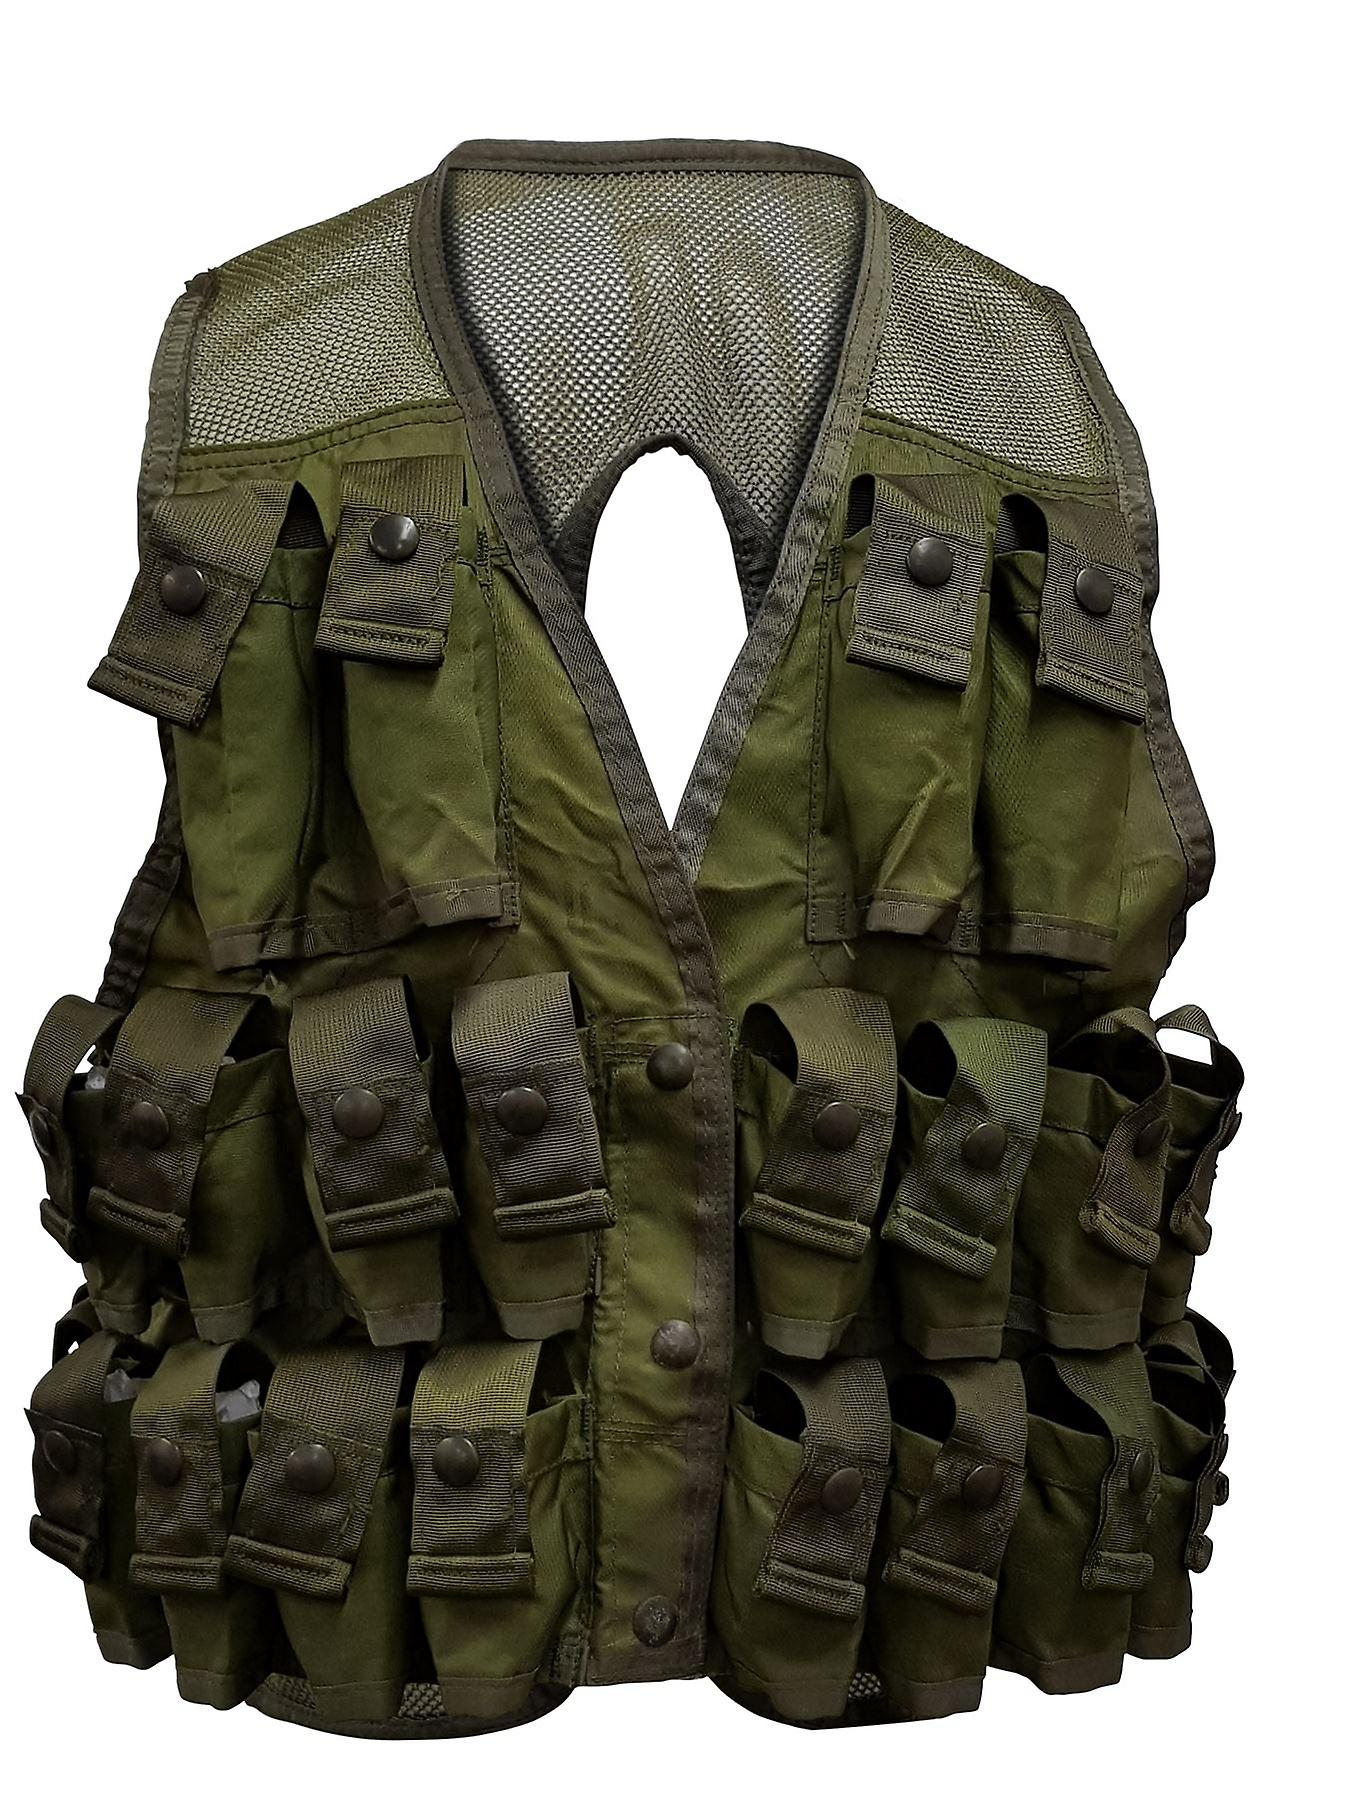 Military 24 Pocket Grenade Vest Paintball Airsoft